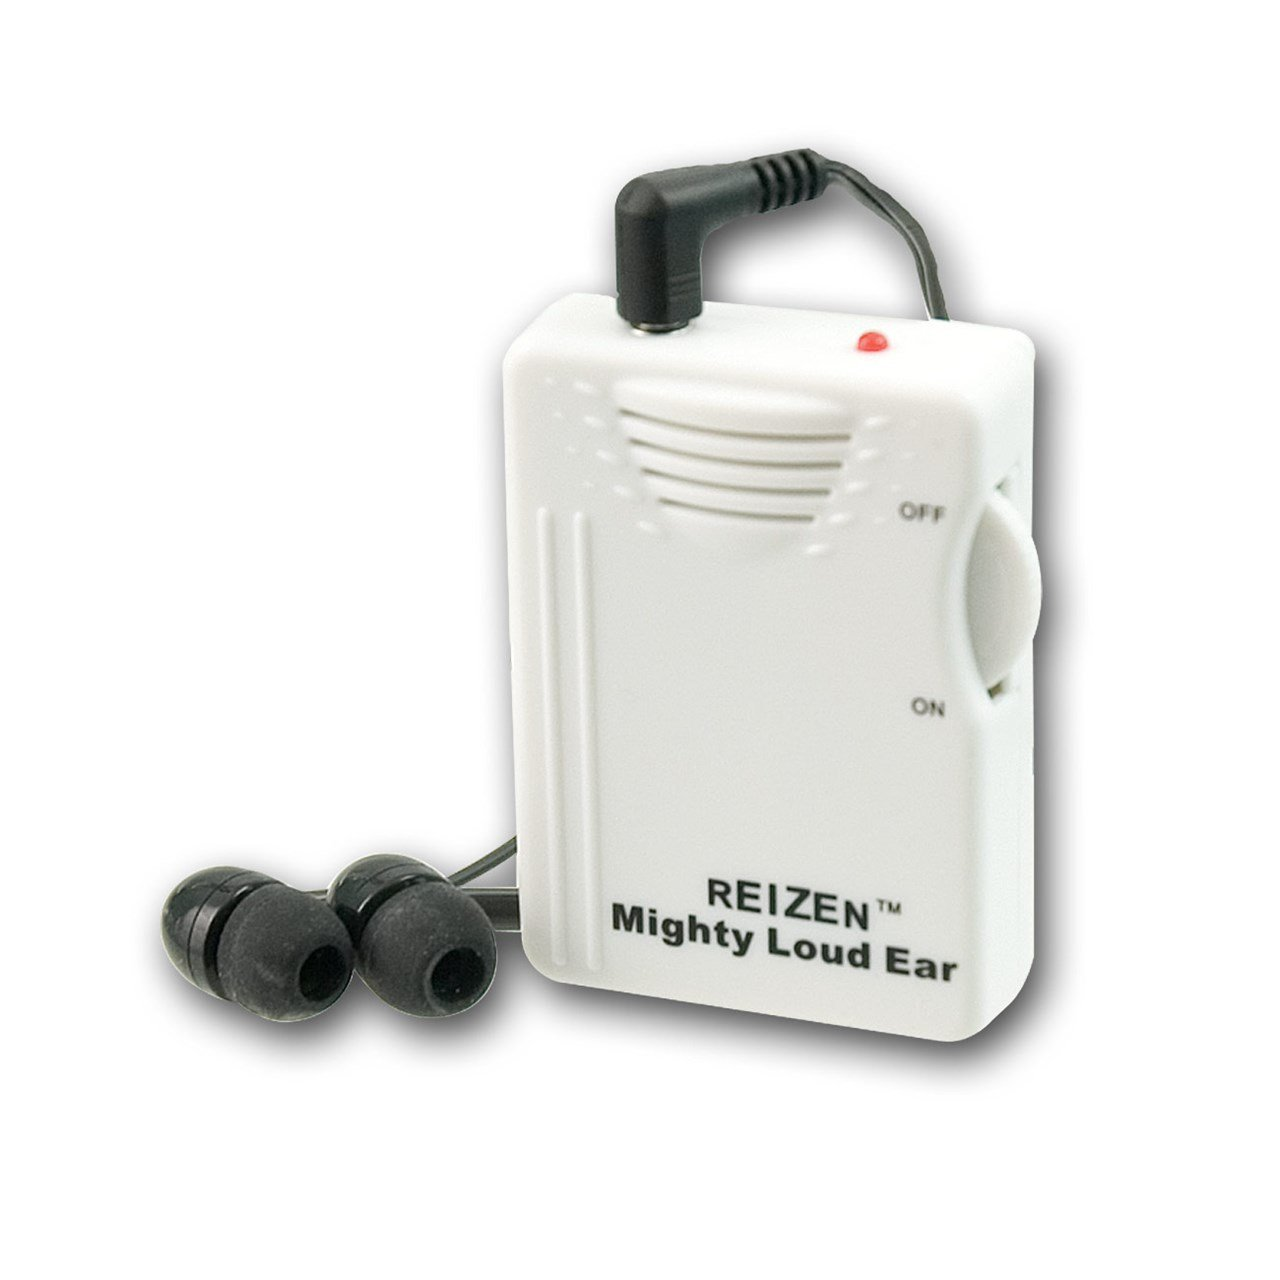 Reizen Mighty Loud Ear 120dB Personal Sound Hearing Amplifier by Reizen